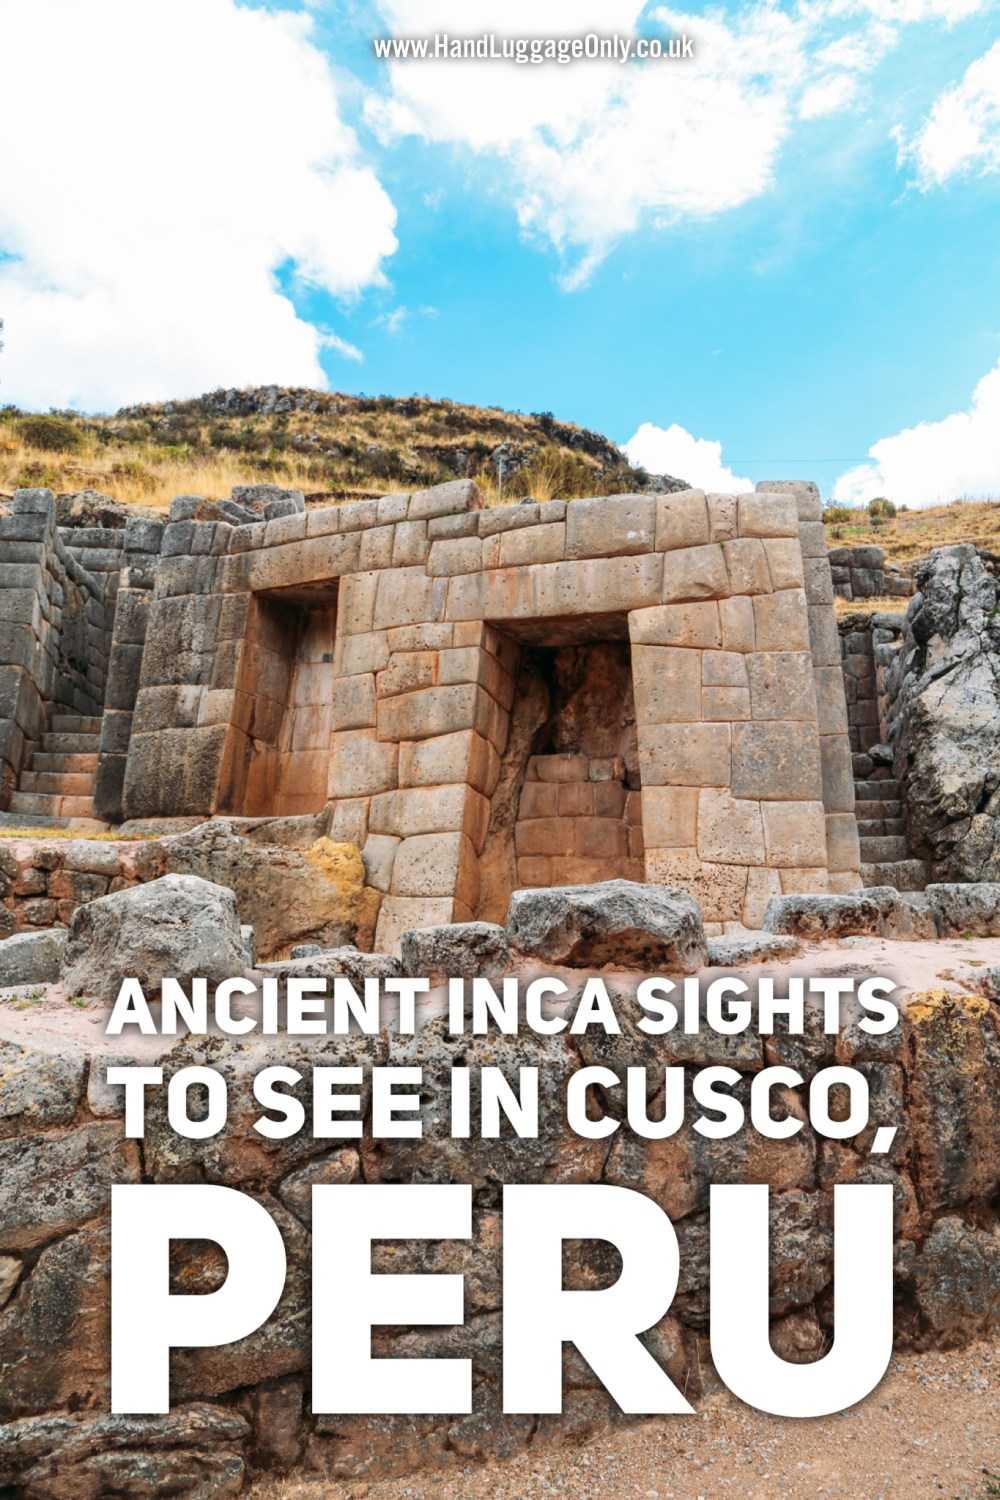 Unexpected Ancient Inca Sights You Have To See Around Cusco, Peru (2)